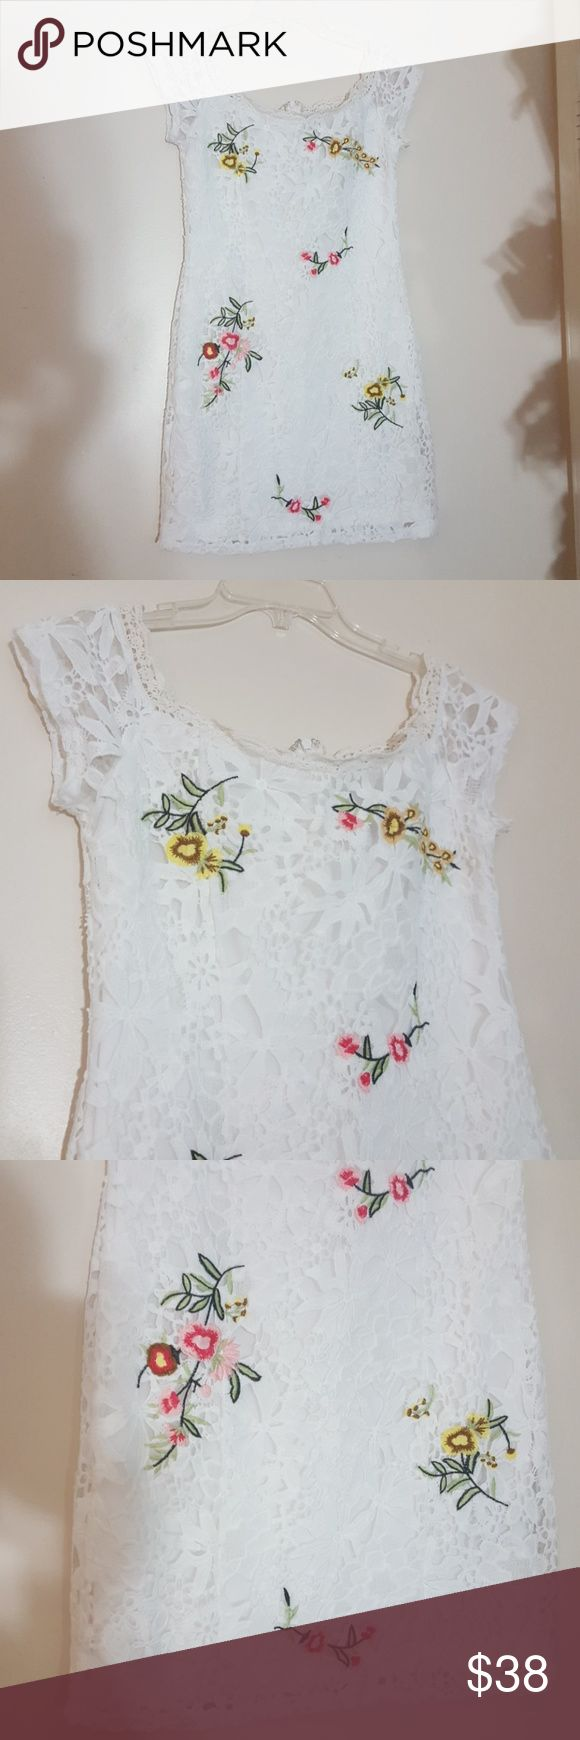 Floral embroidery lace dress Floral embroidery dress lace over solid white lining. Worn once. Like new. Very sexy. Buy a bundle and Save. From a smoke free home #lace #embroidery Forever 21 Dresses Mini